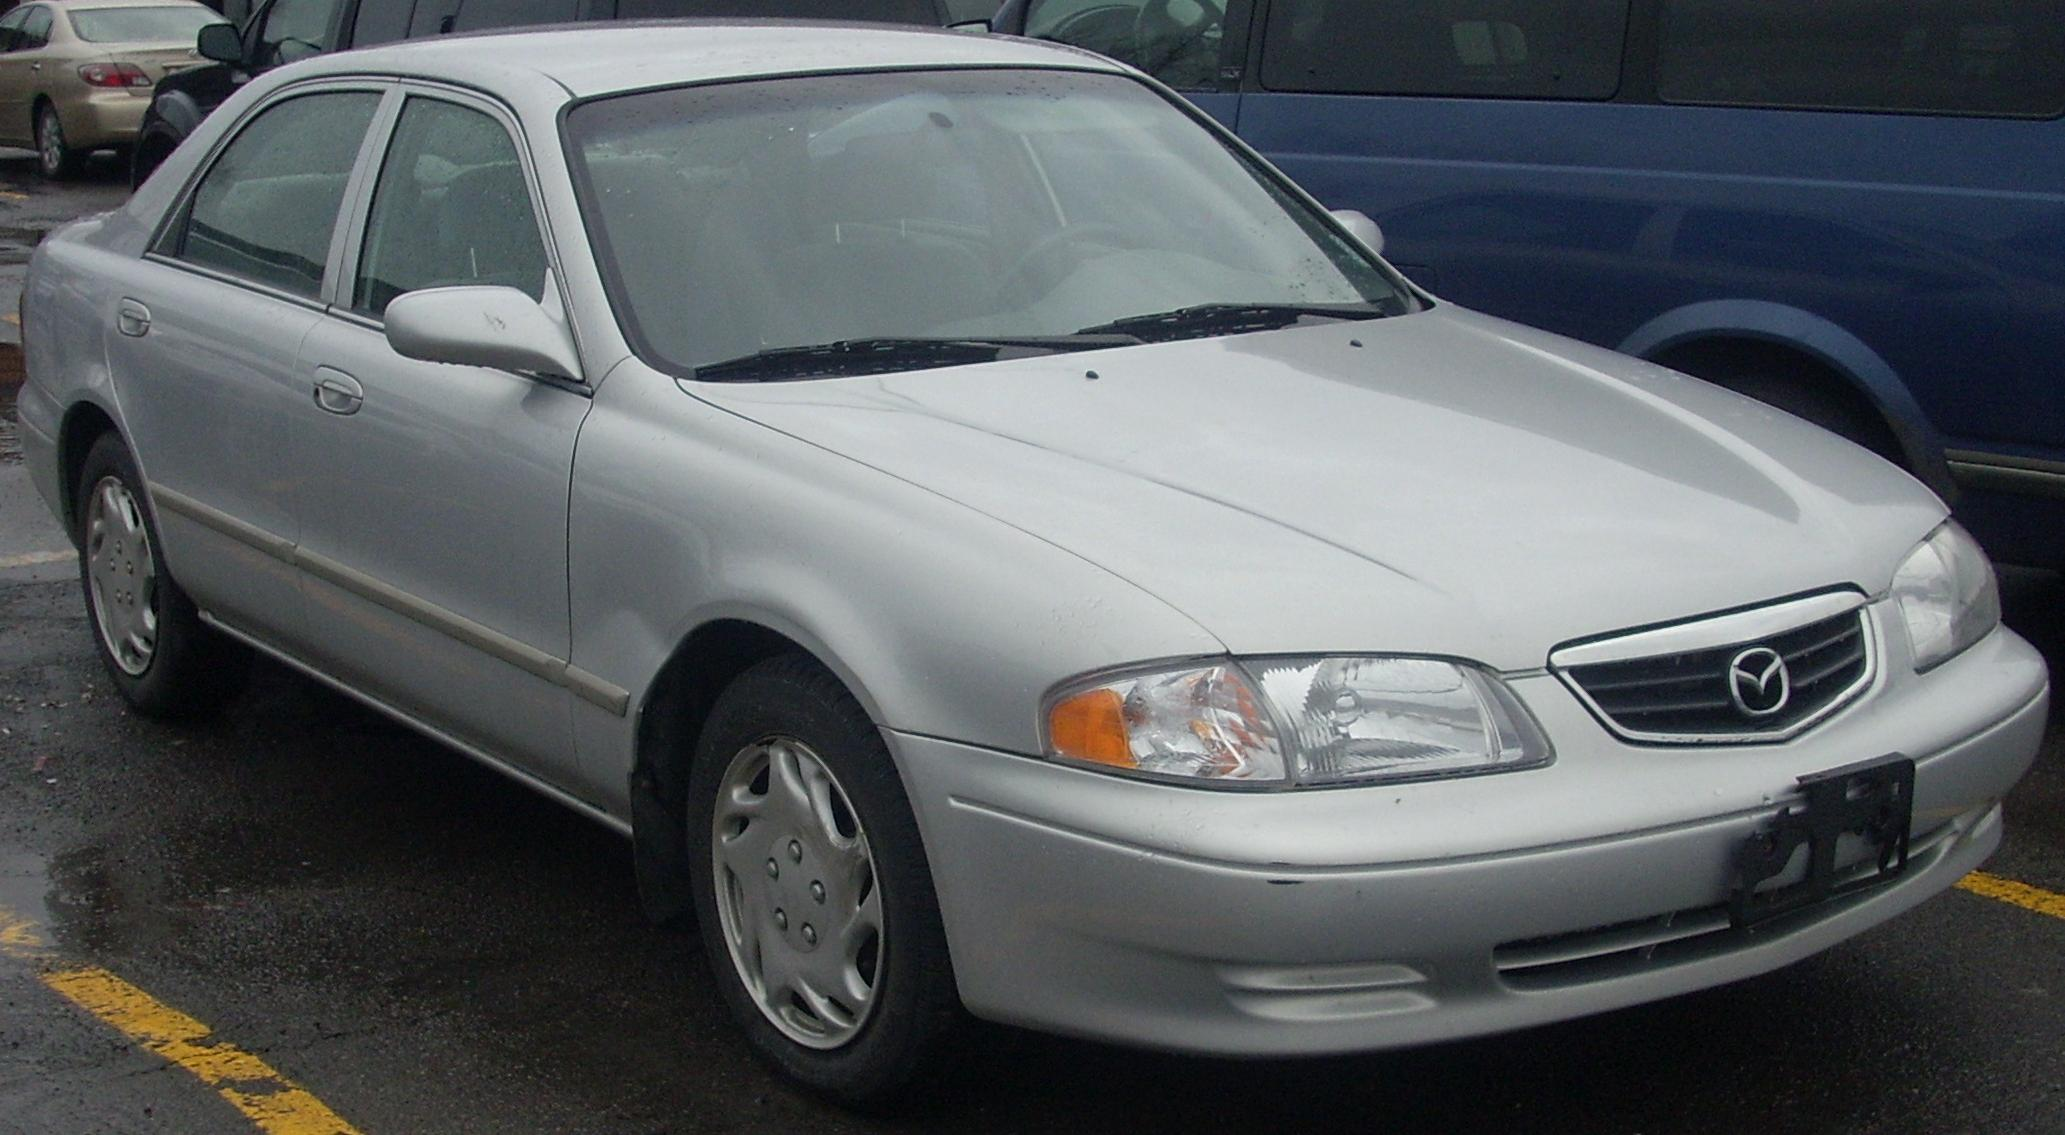 2002 Mazda 626 Photos, Informations, Articles - BestCarMag.com